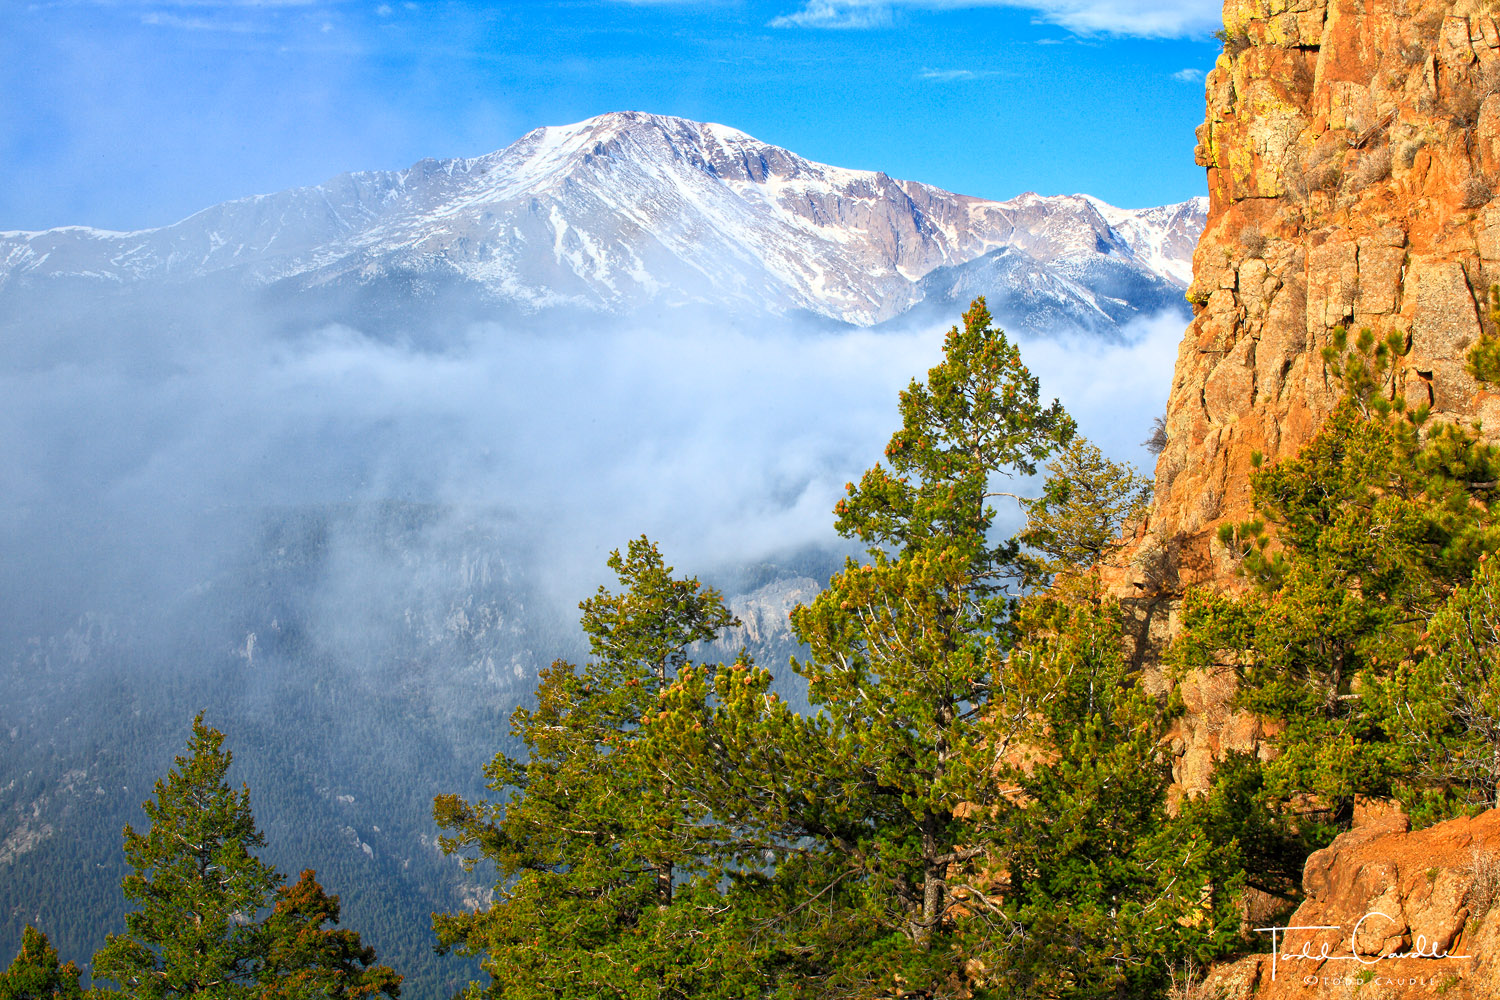 Pikes Peak (14,115') rises above the clouds, Pike National Forest.